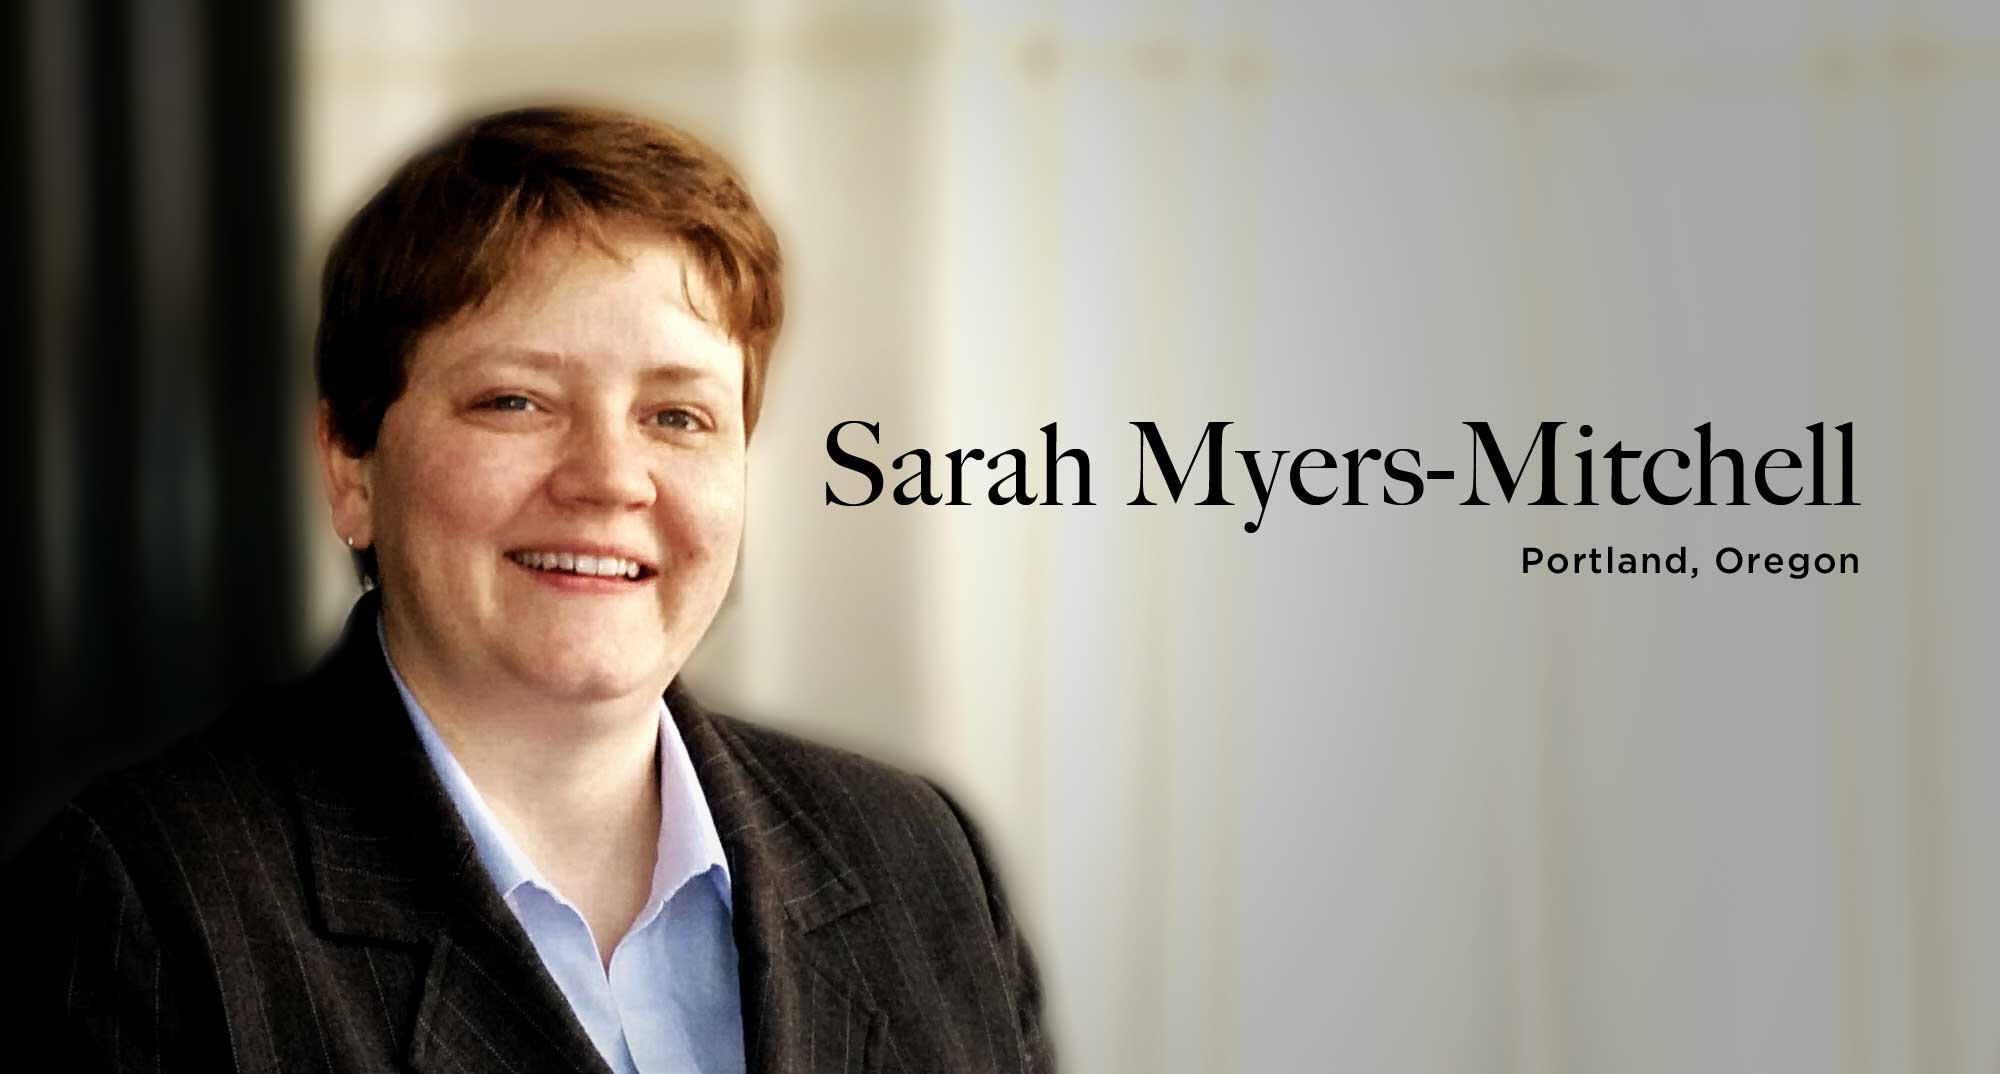 Sarah Myers-Mitchell, Portland Oregon, Morris D'Angelo, CPA, Accountant, Financial Services